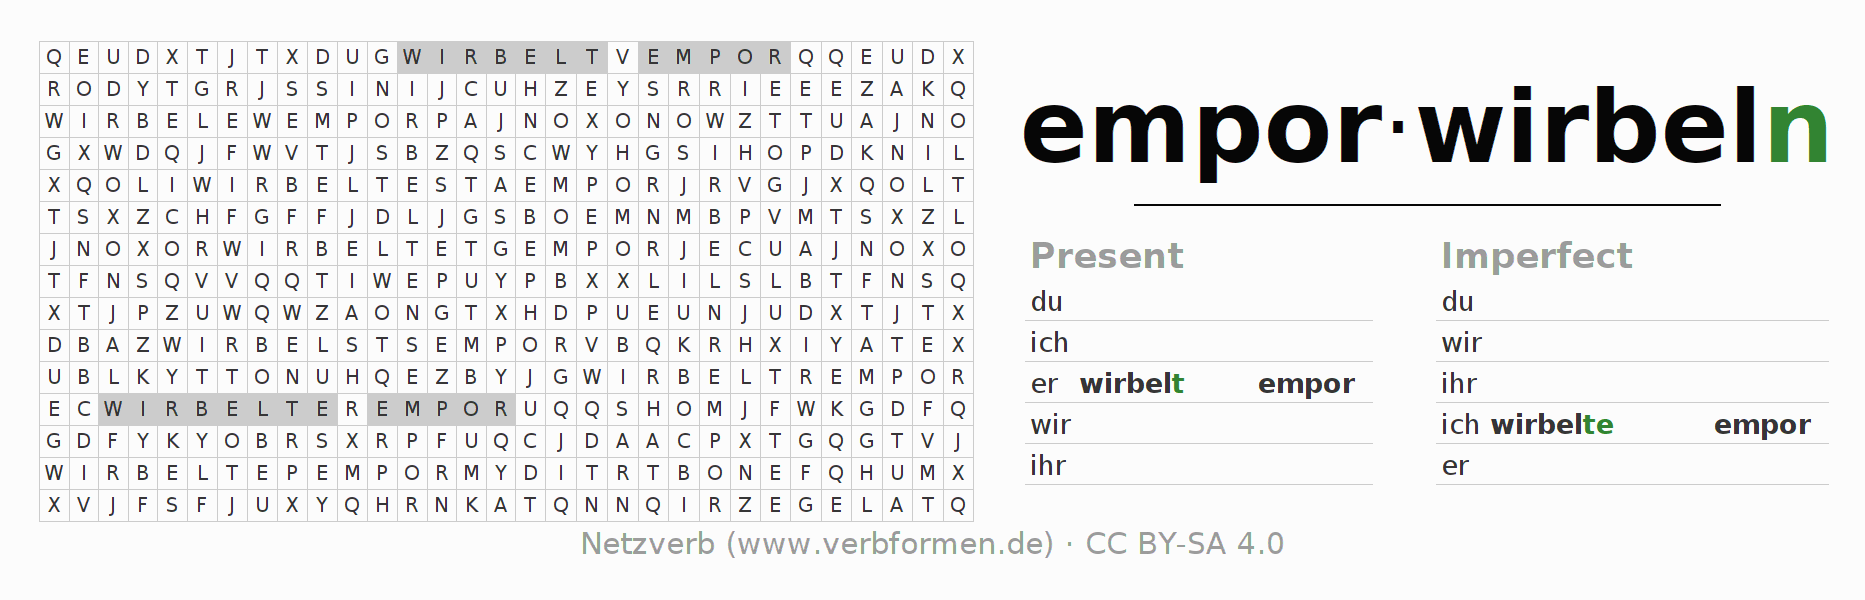 Word search puzzle for the conjugation of the verb emporwirbeln (ist)